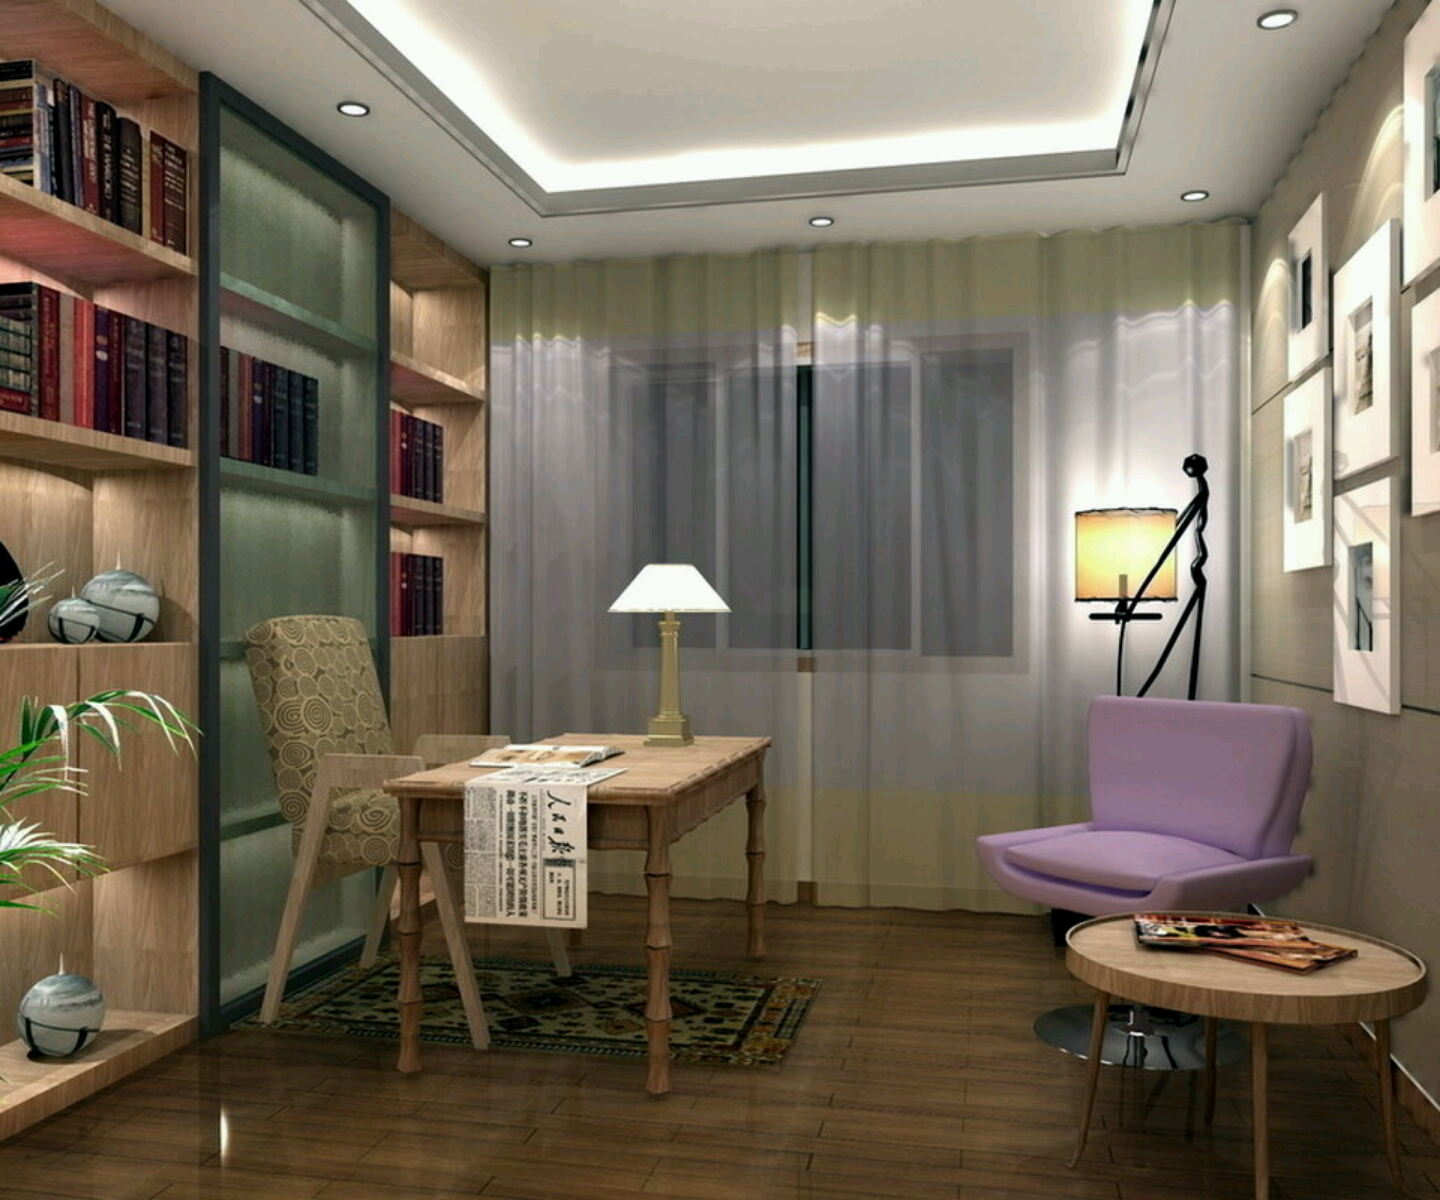 Furnitures Designs modern furniture: study rooms furnitures designs ideas.